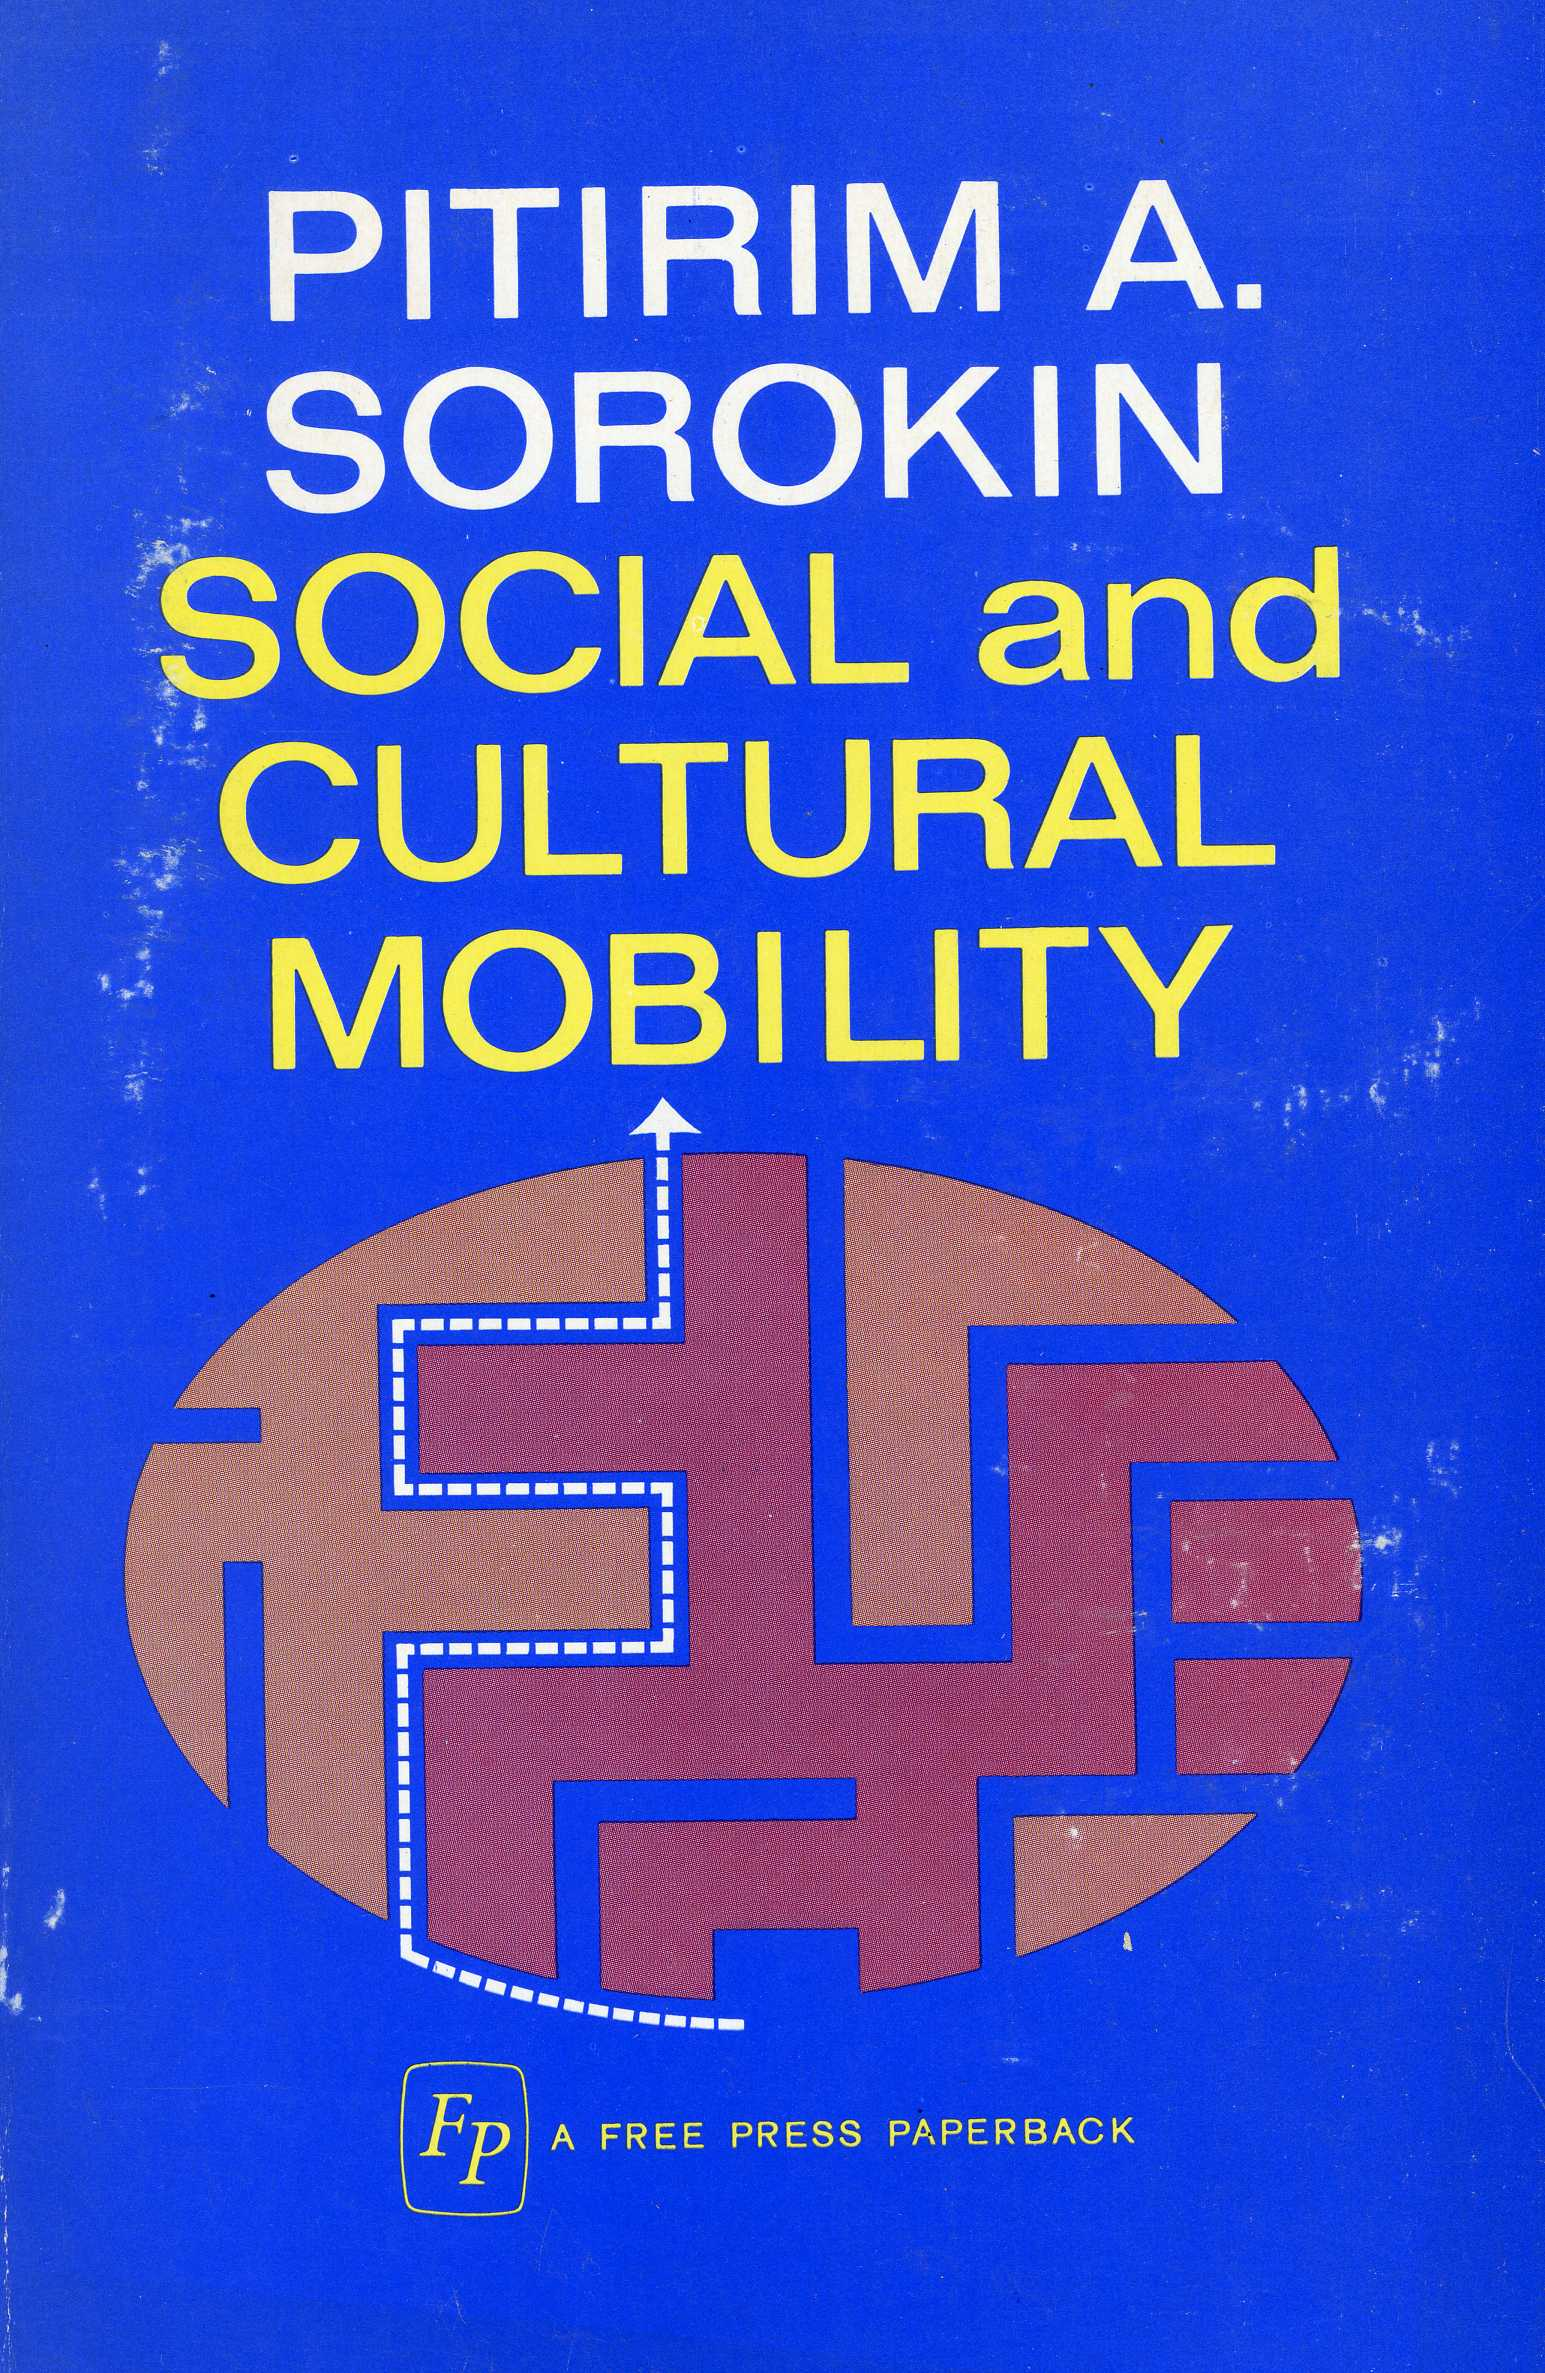 social and cultural mobility093.jpg